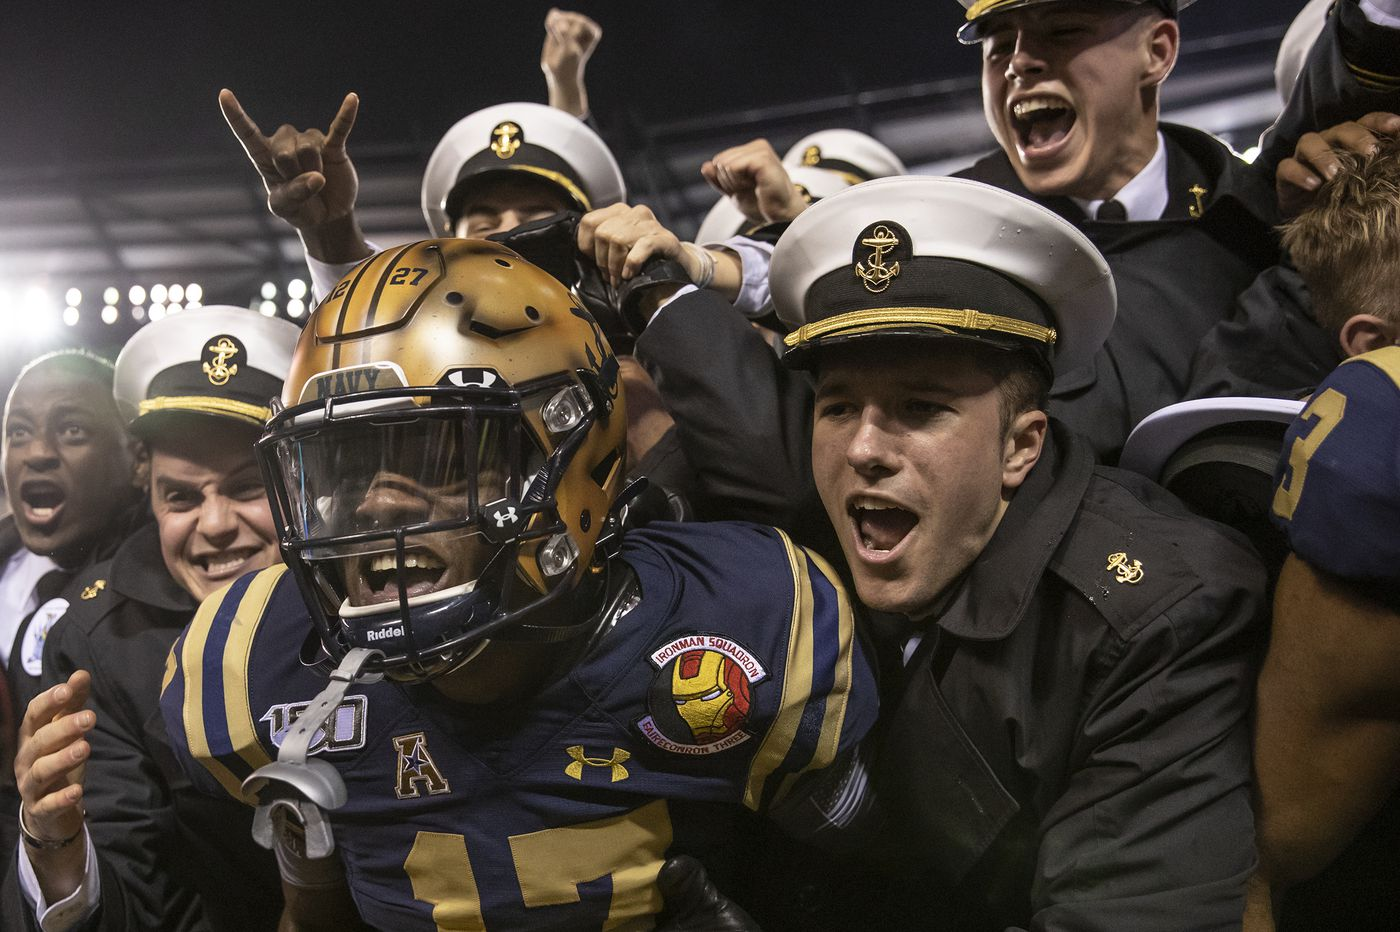 Malcolm Perry's record-setting 304-yard rushing day sparks Navy to 31-7 win over Army